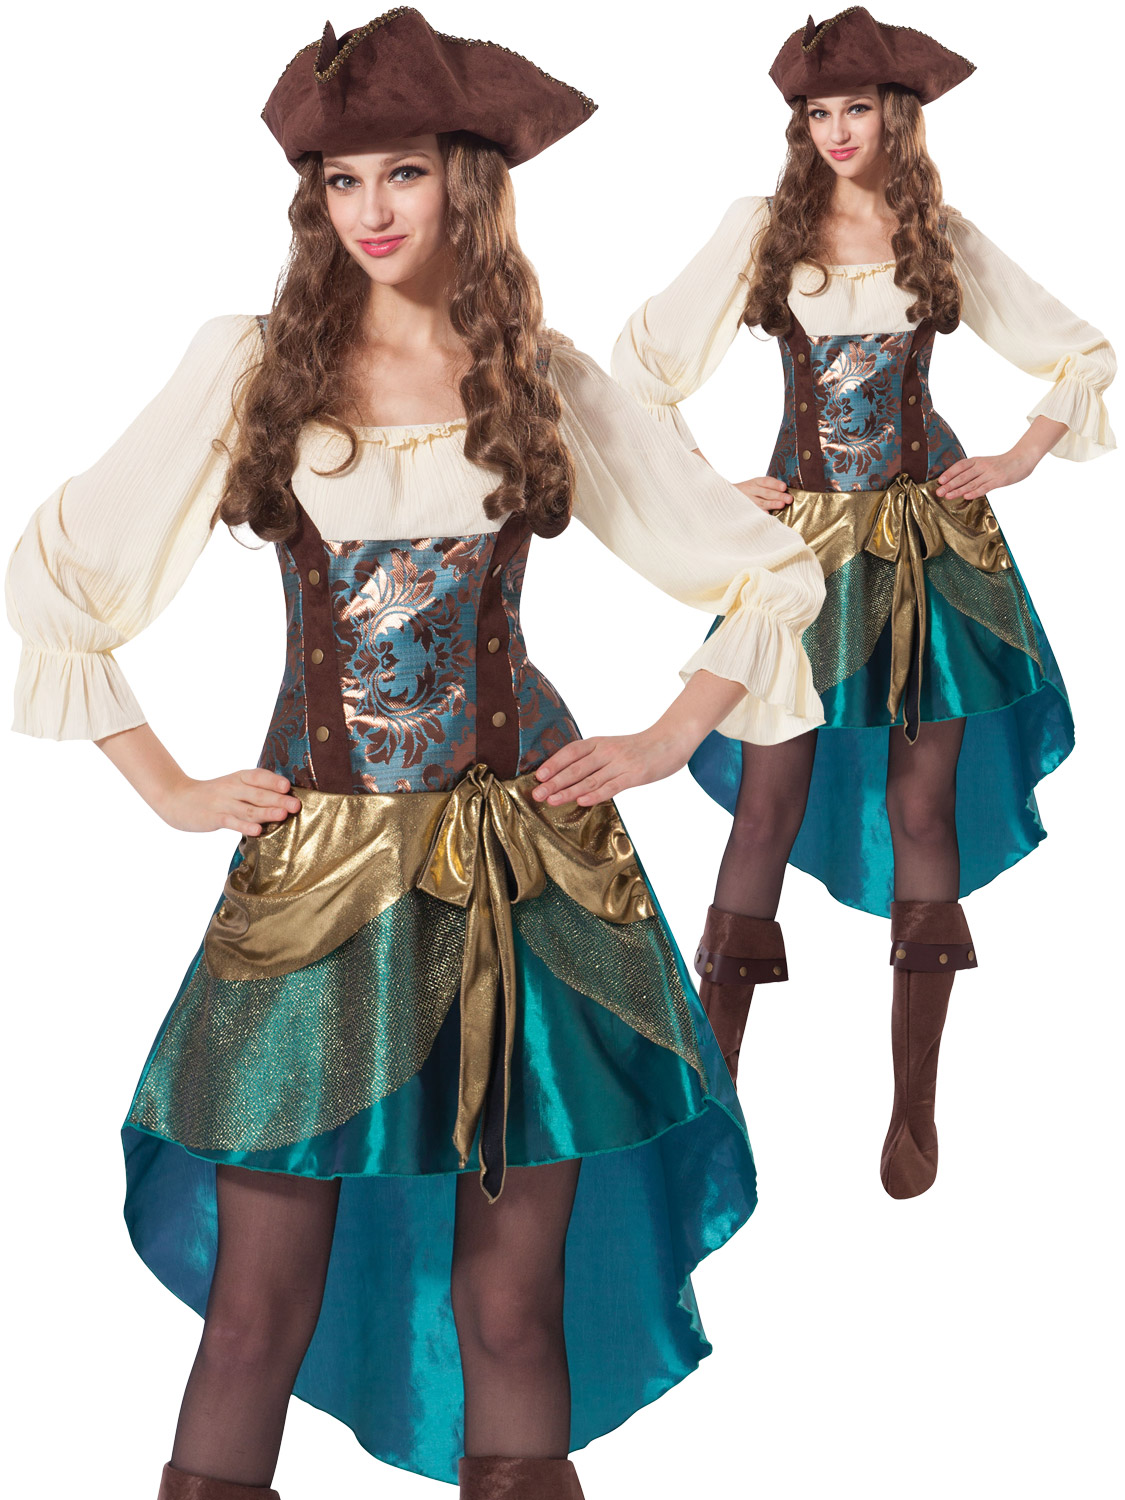 Ladies pirate princess costume adult captain buccaneer fancy dress aye aye pirate transform yourself into a sea sailing pirate with this ladies deluxe pirate costume solutioingenieria Choice Image